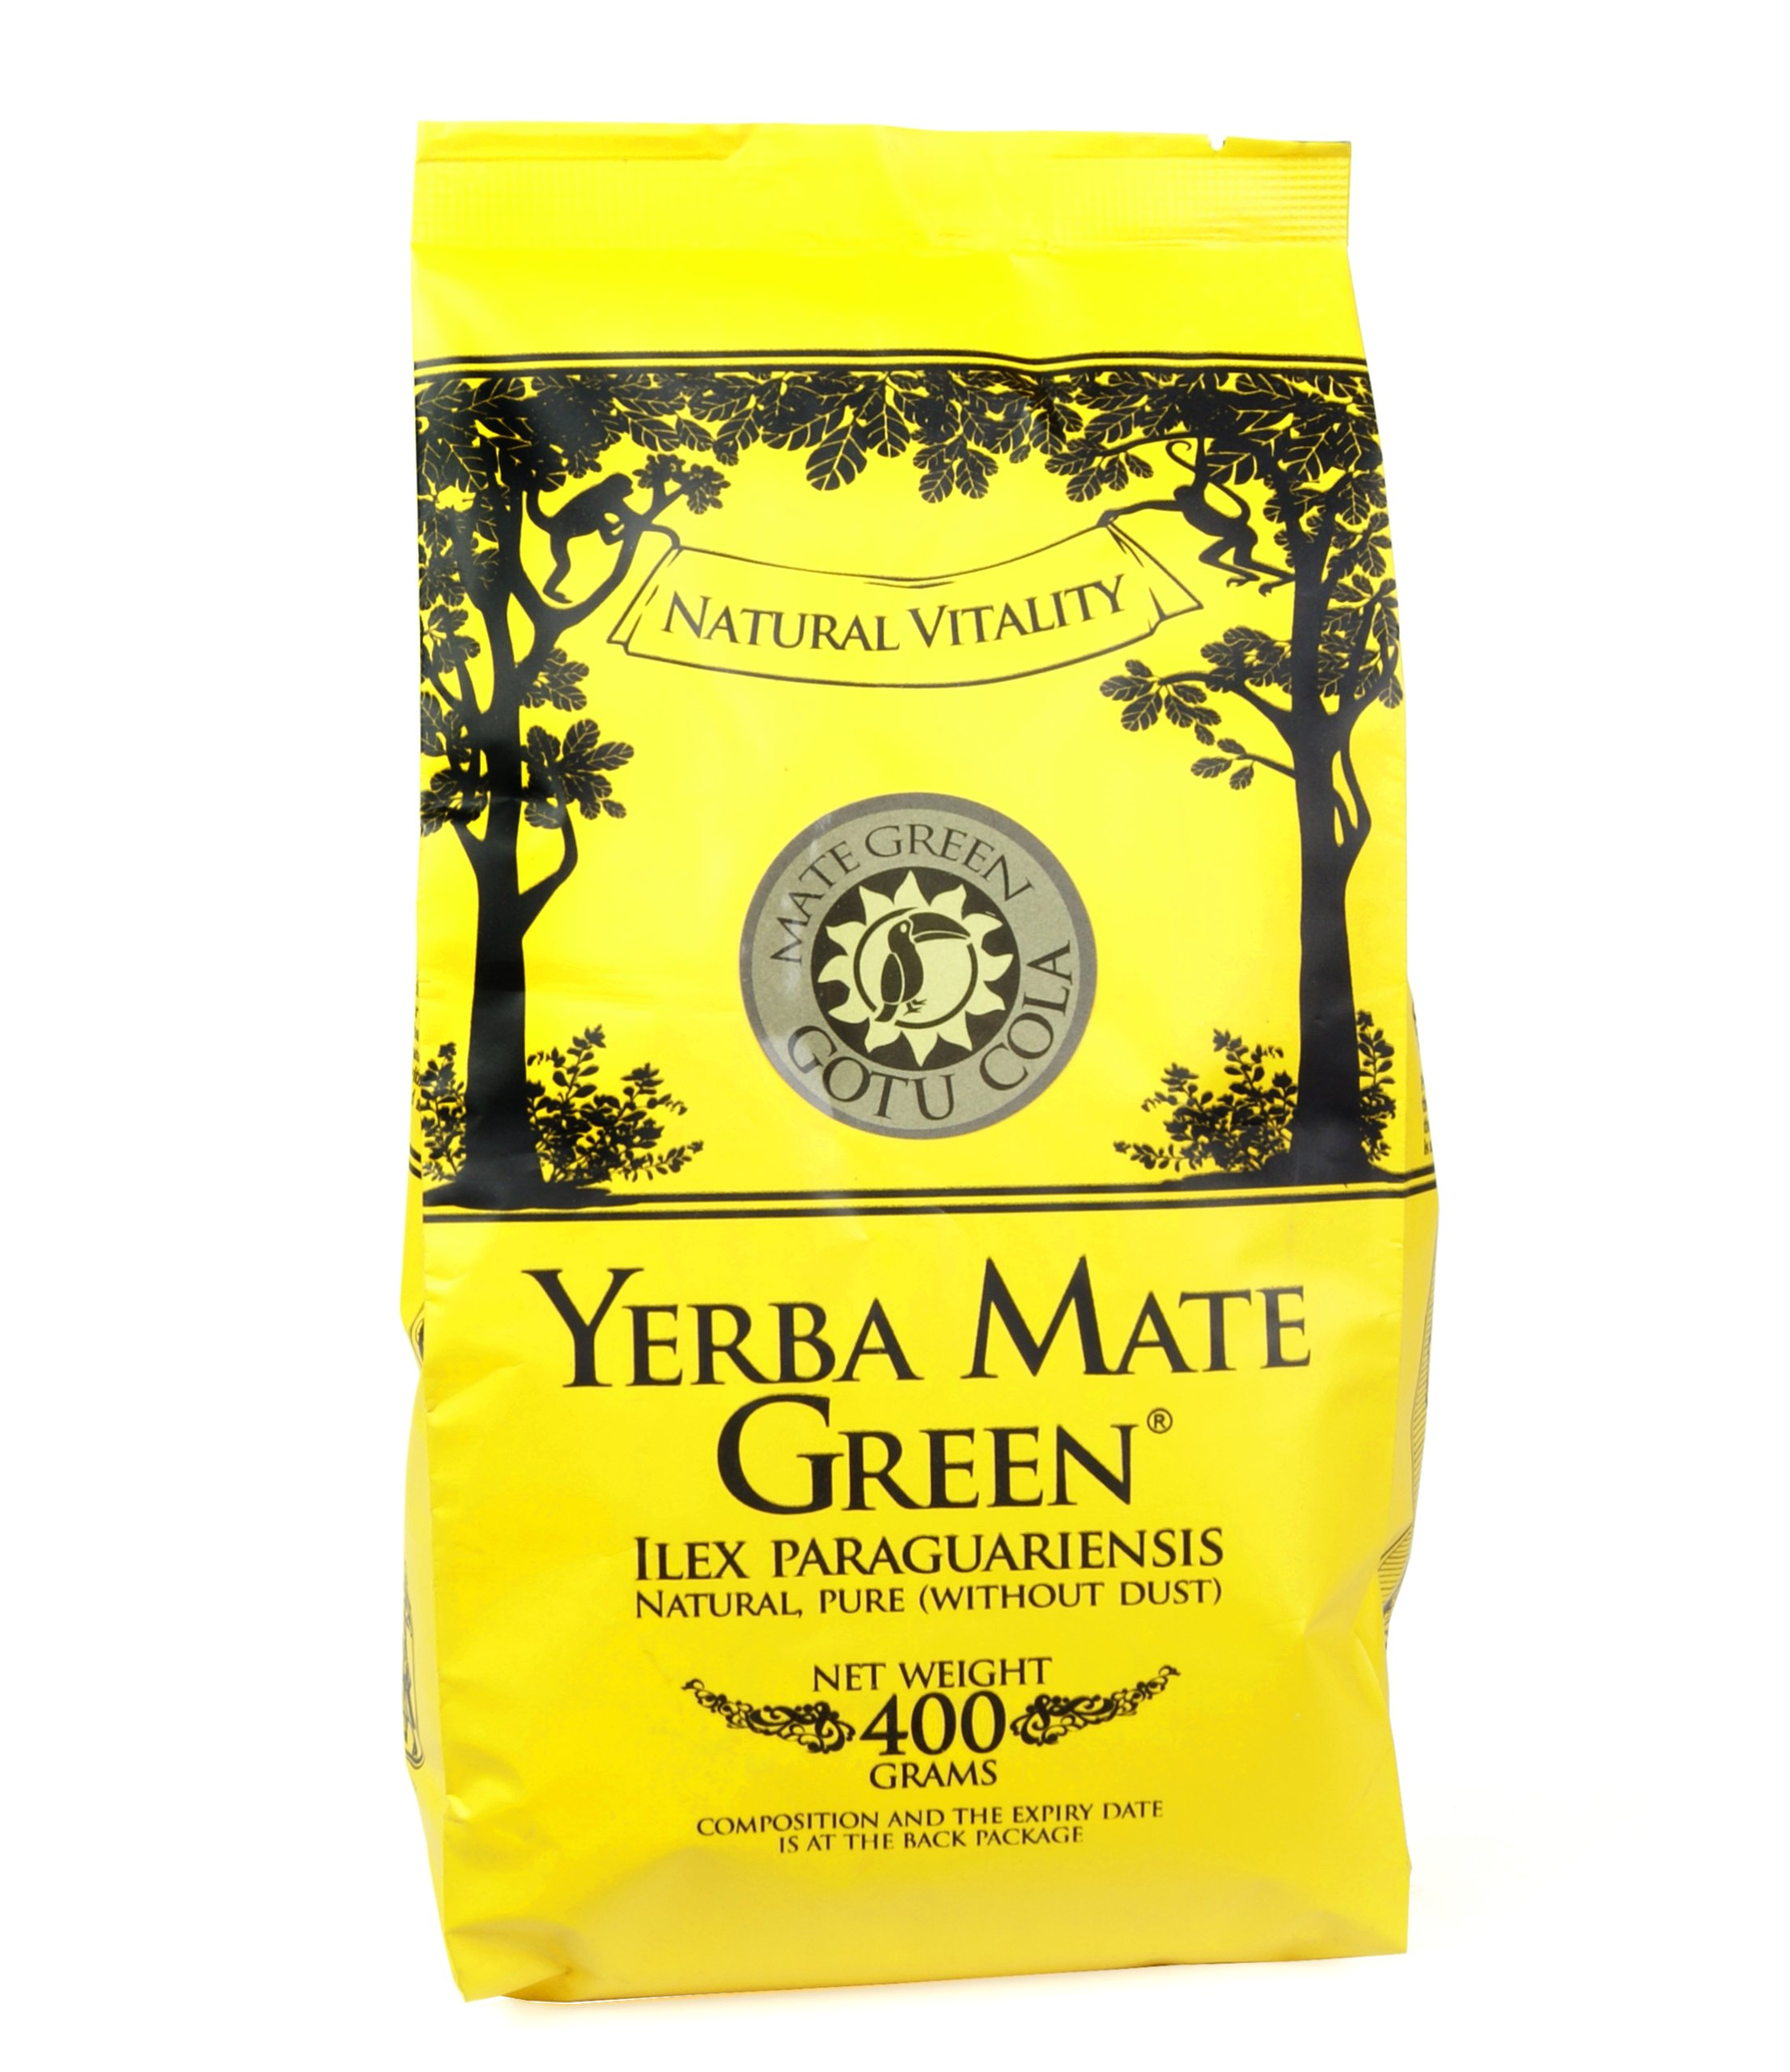 Yerba Mate Green Gotu Cola 400g